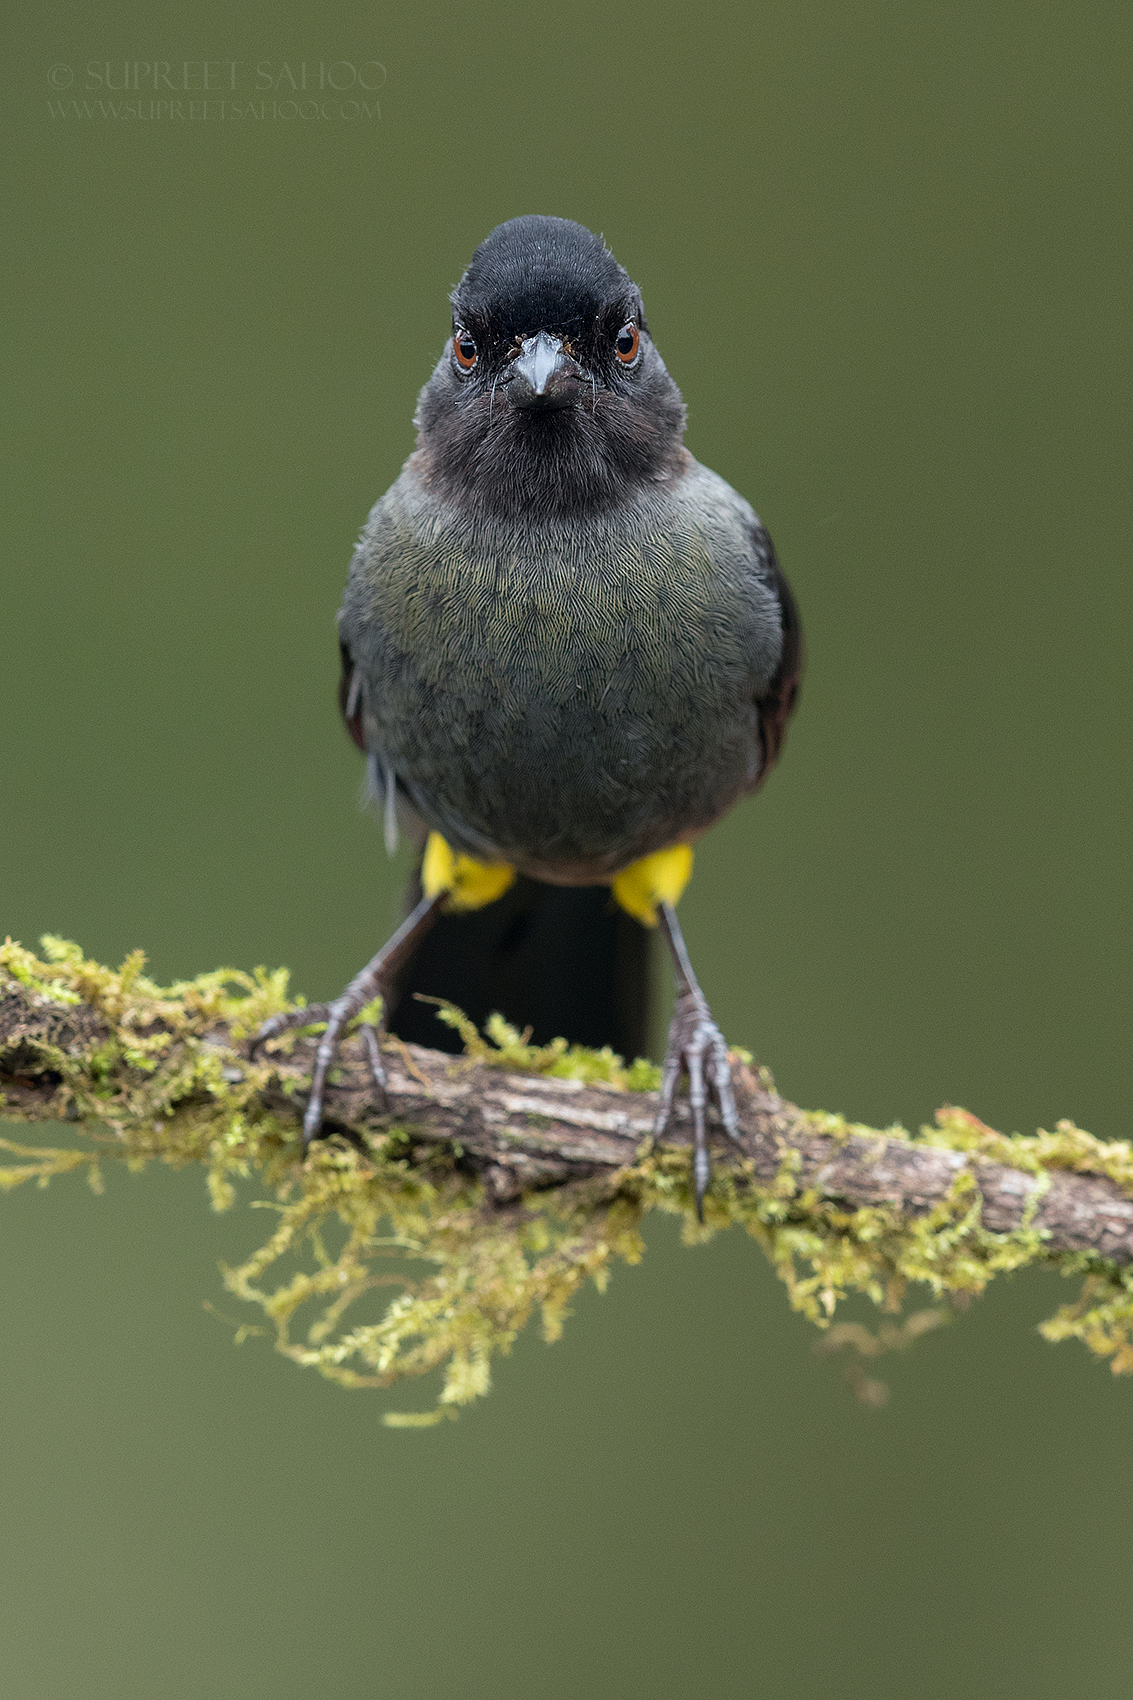 Yellow-thighed brush finch